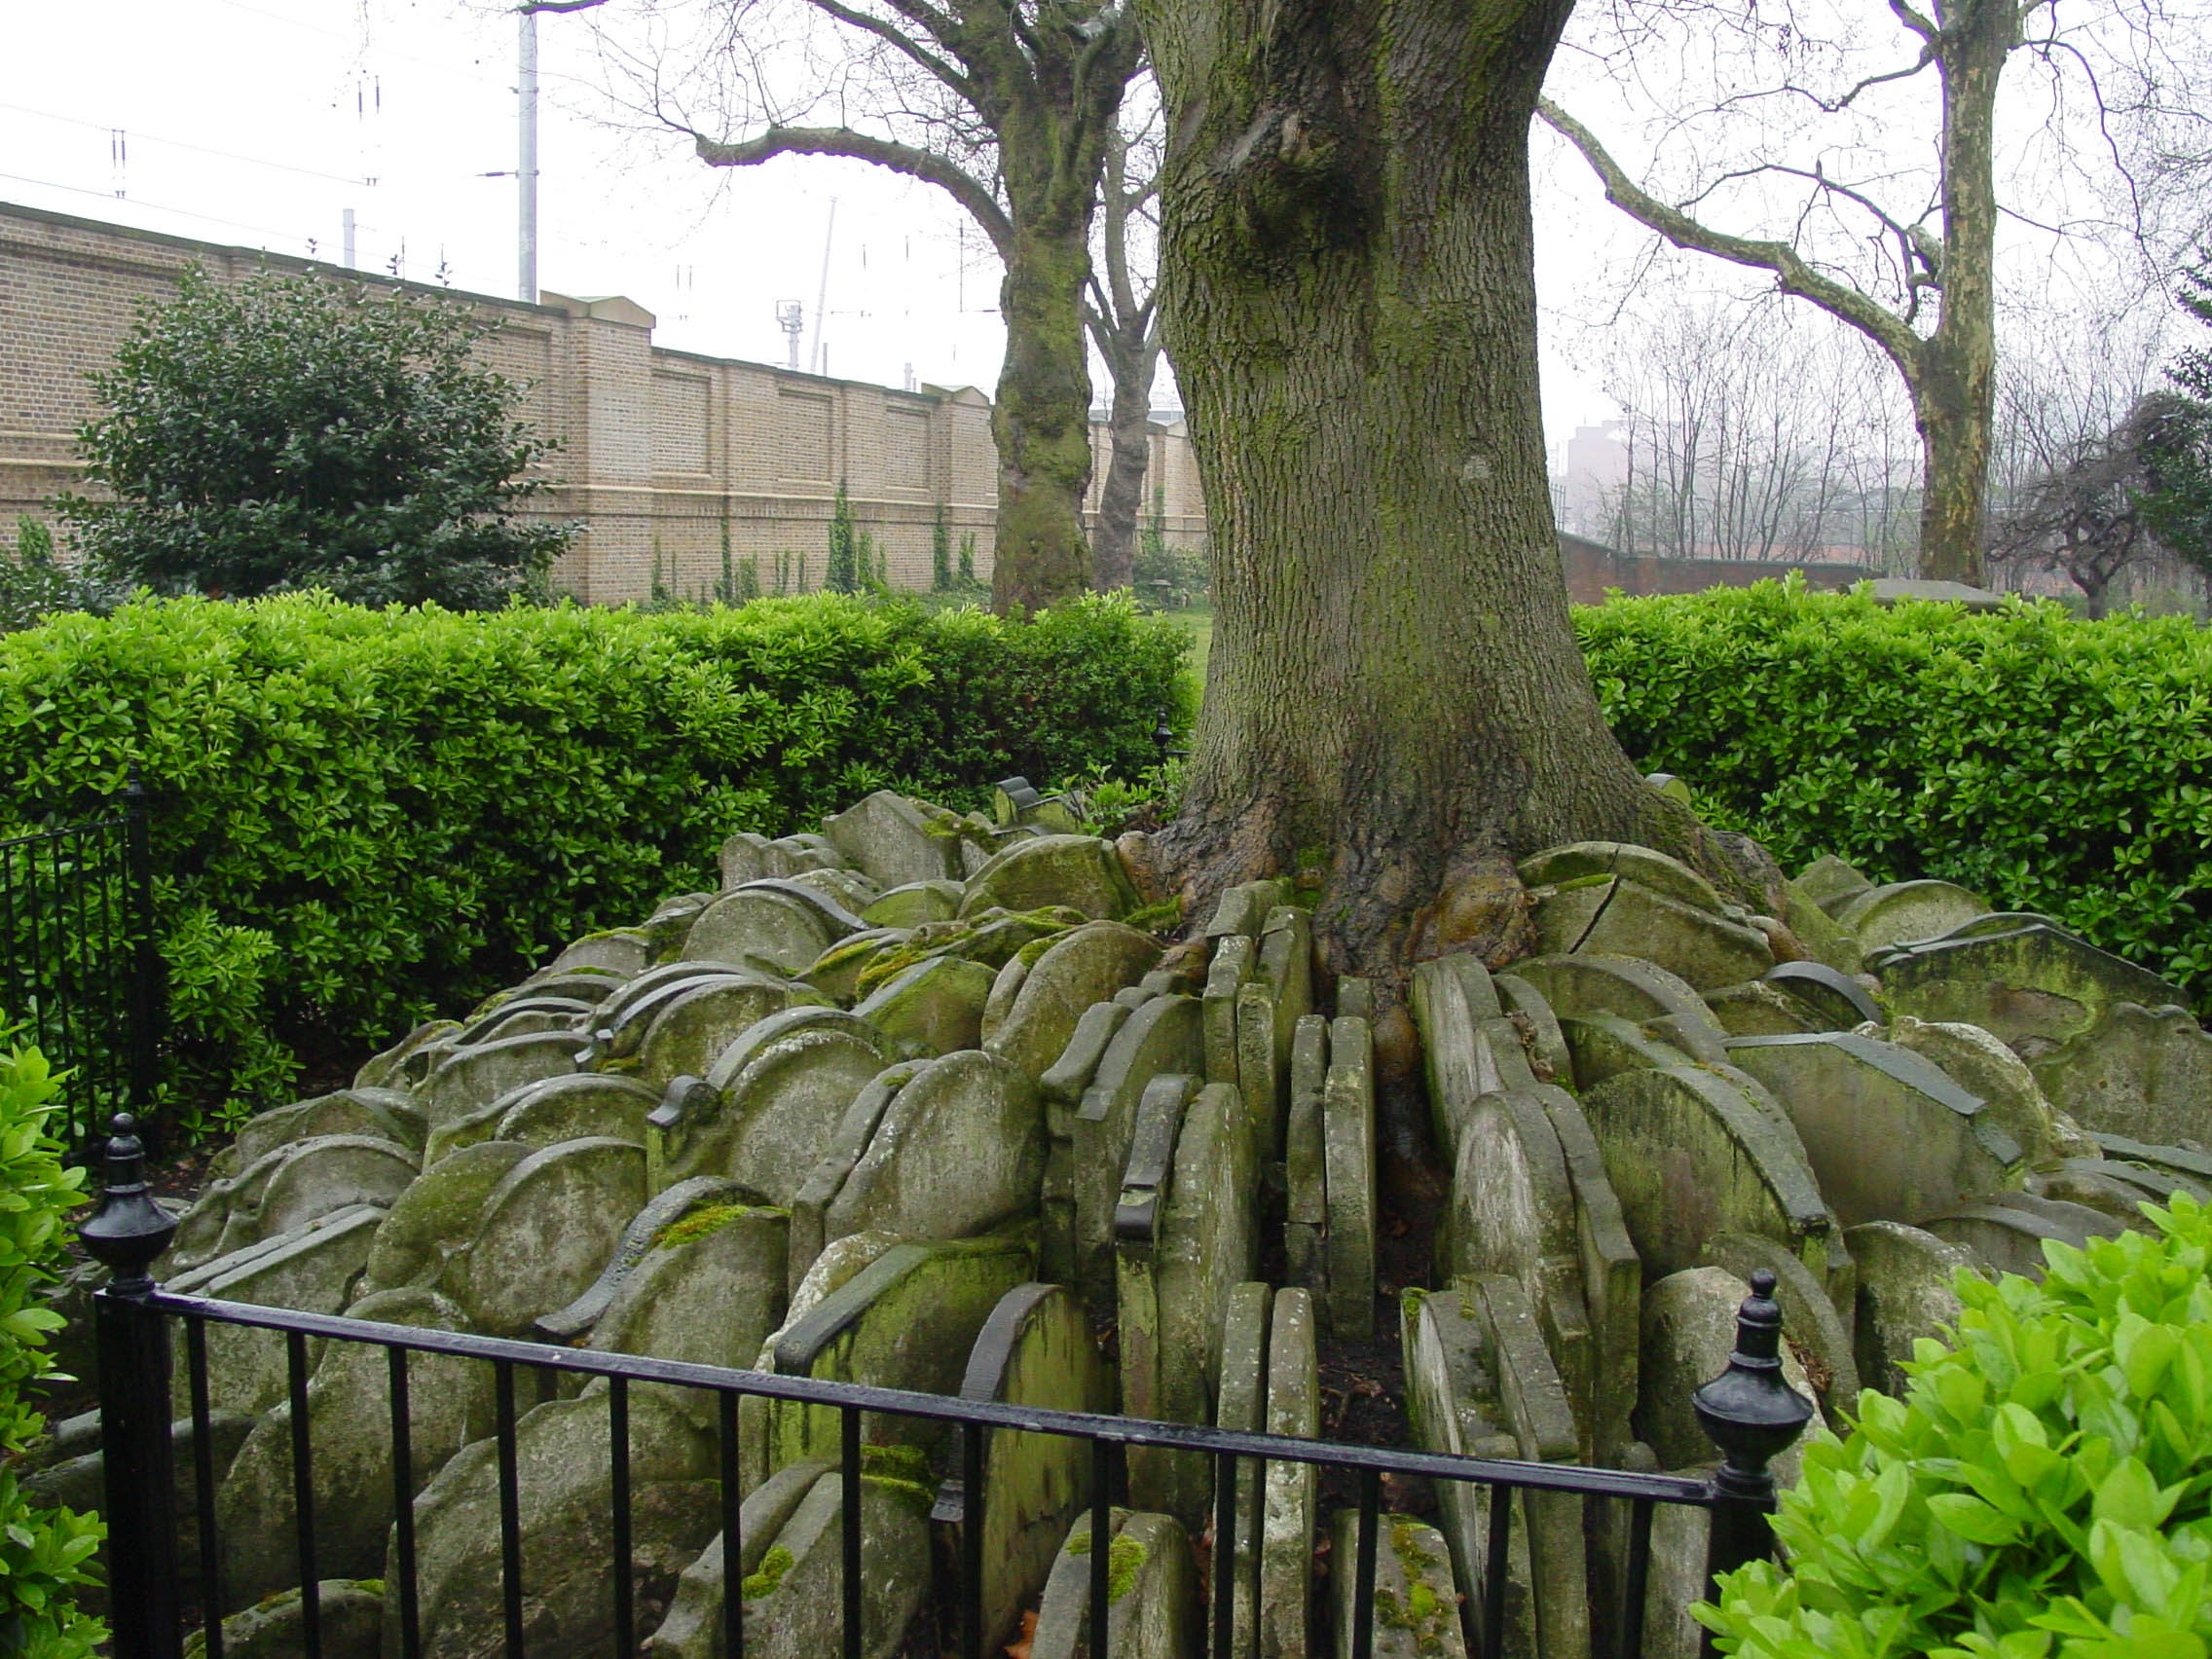 pancras churchyard in london essay The chest tomb of sir john gurney in st pancras churchyard has its inscription turned towards the hedge which london in 1768 the son of a parliamentary.